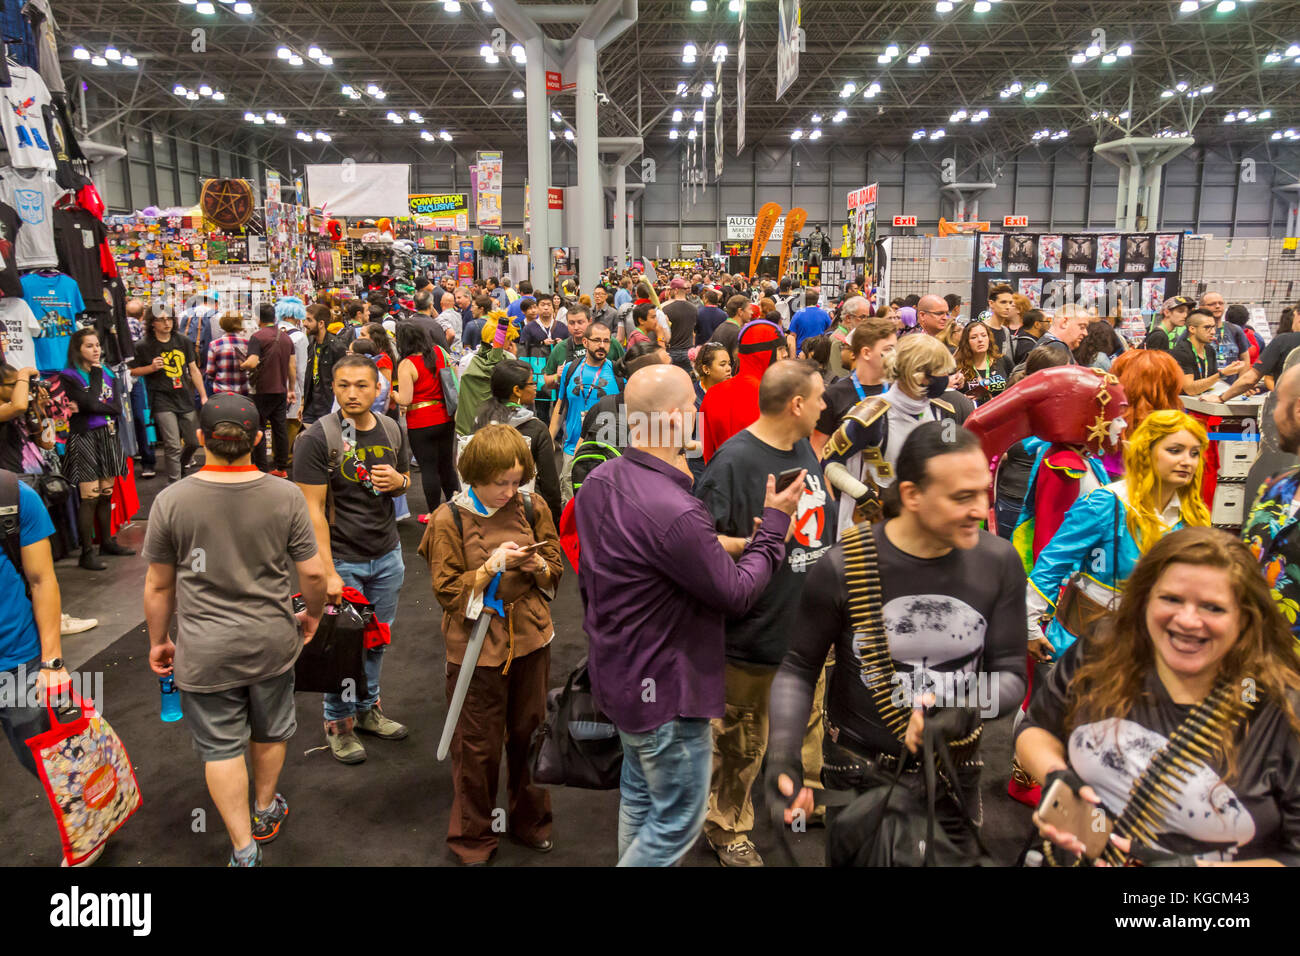 Visitors and fans attend the New York Comic Con Comic Book, Movie and Convention. - Stock Image